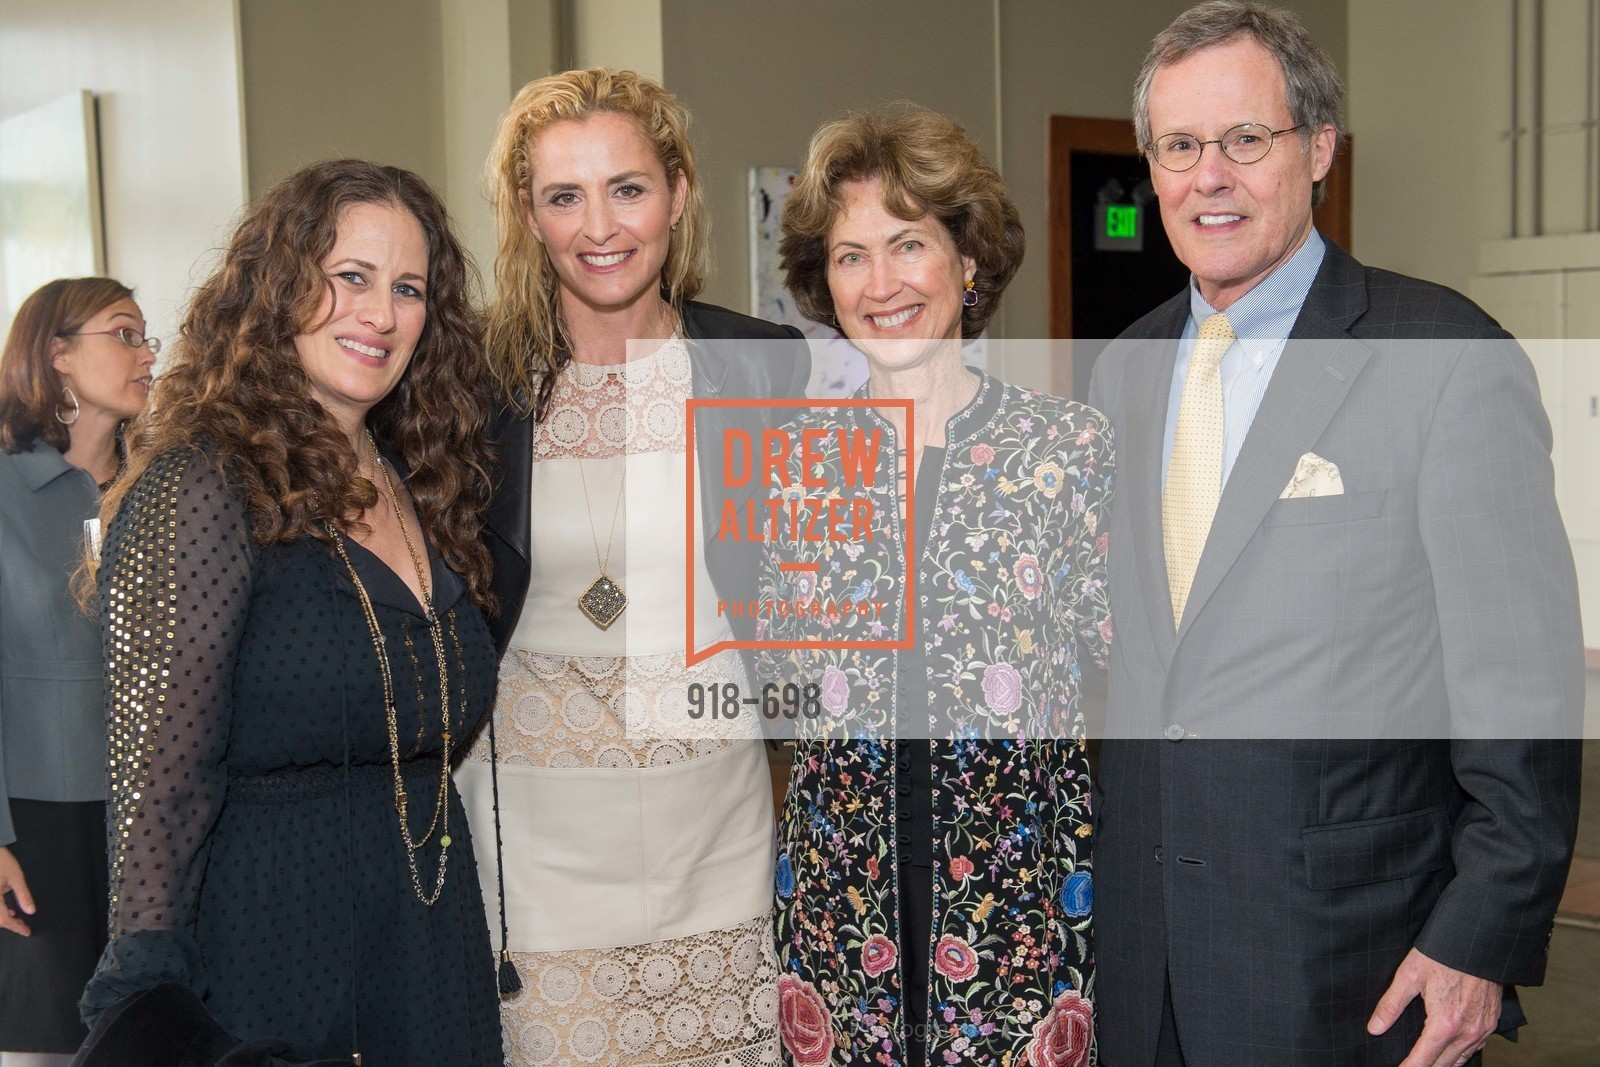 Julia Cohen, Ami Aronson, Mauree Jane Perry, Mark Perry, EWG's 6th Annual Earth Dinner, US, May 6th, 2015,Drew Altizer, Drew Altizer Photography, full-service agency, private events, San Francisco photographer, photographer california